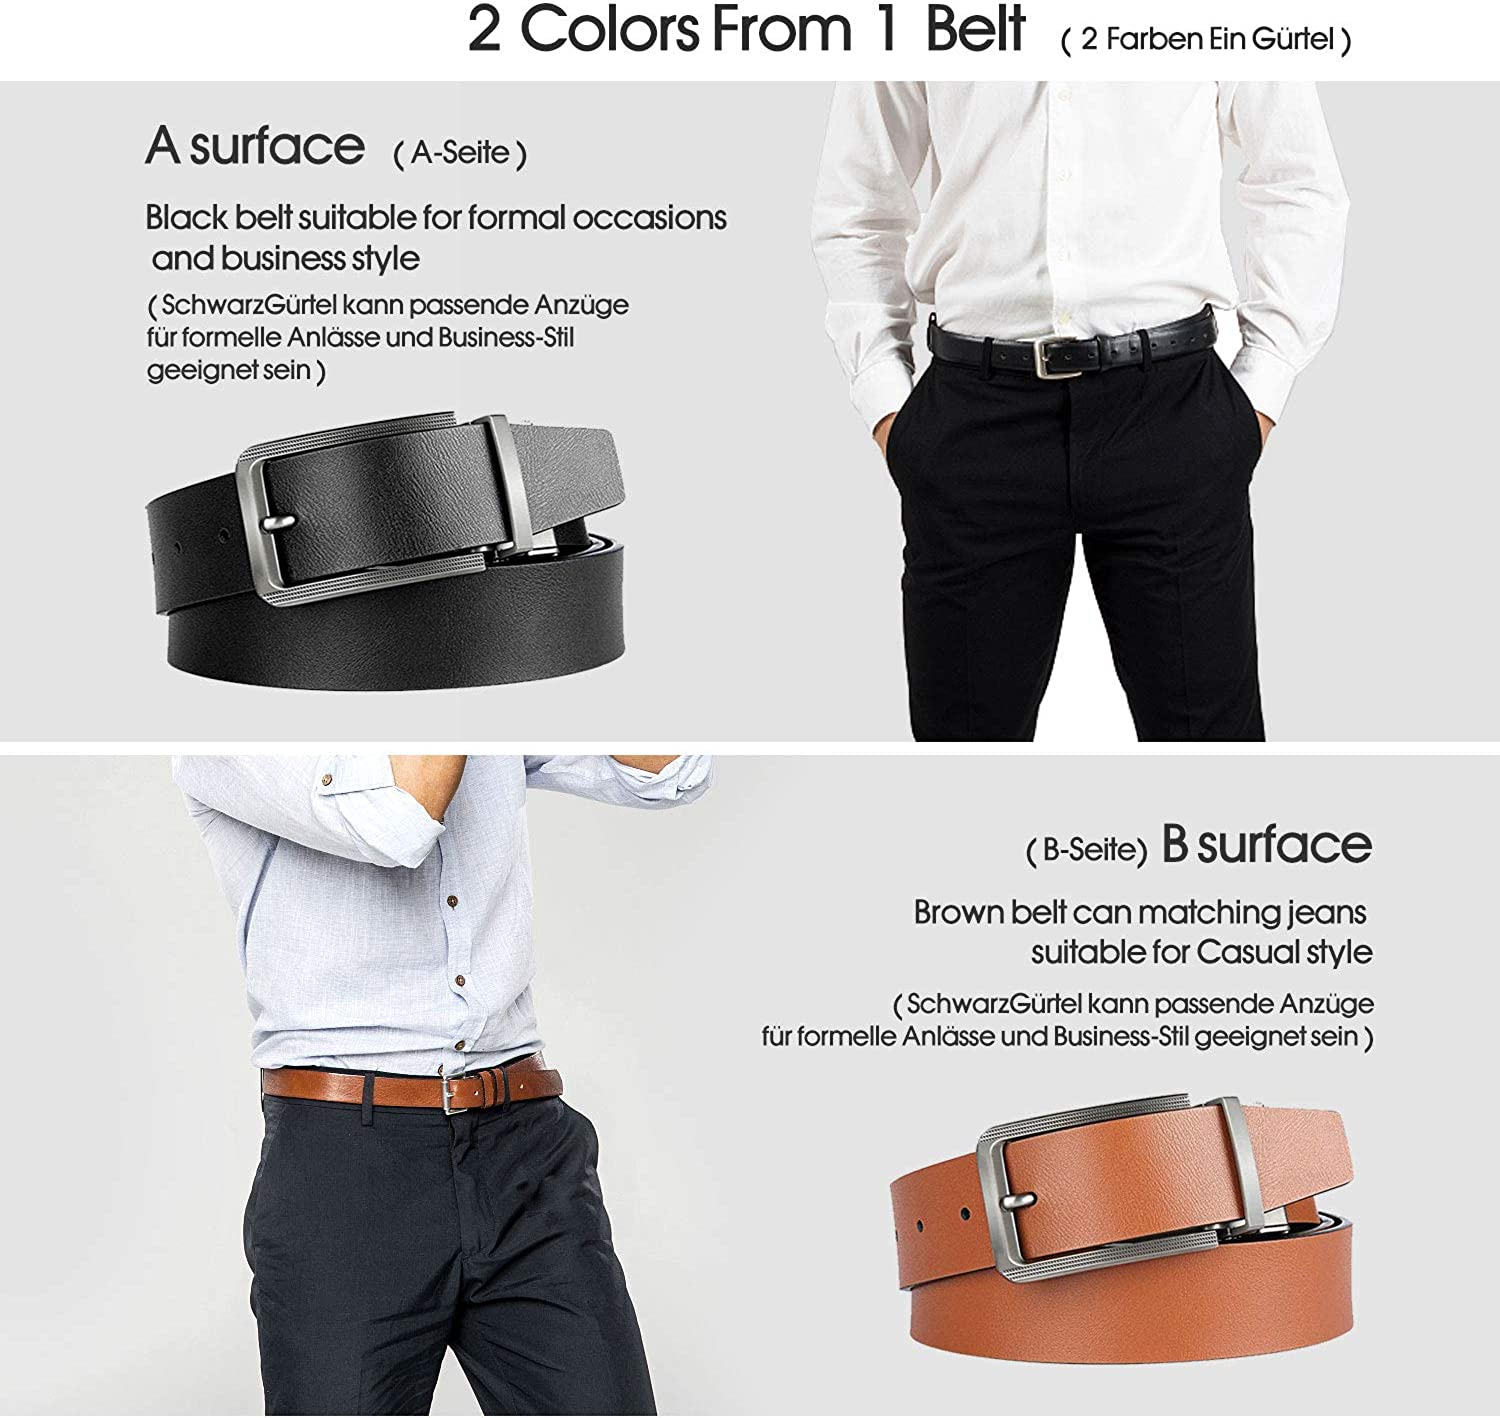 BESTKEE Mens Leather Belt Reversible suit belt jeans leather belt for men Black and Brown width 3.5cm with Rotated Buckle